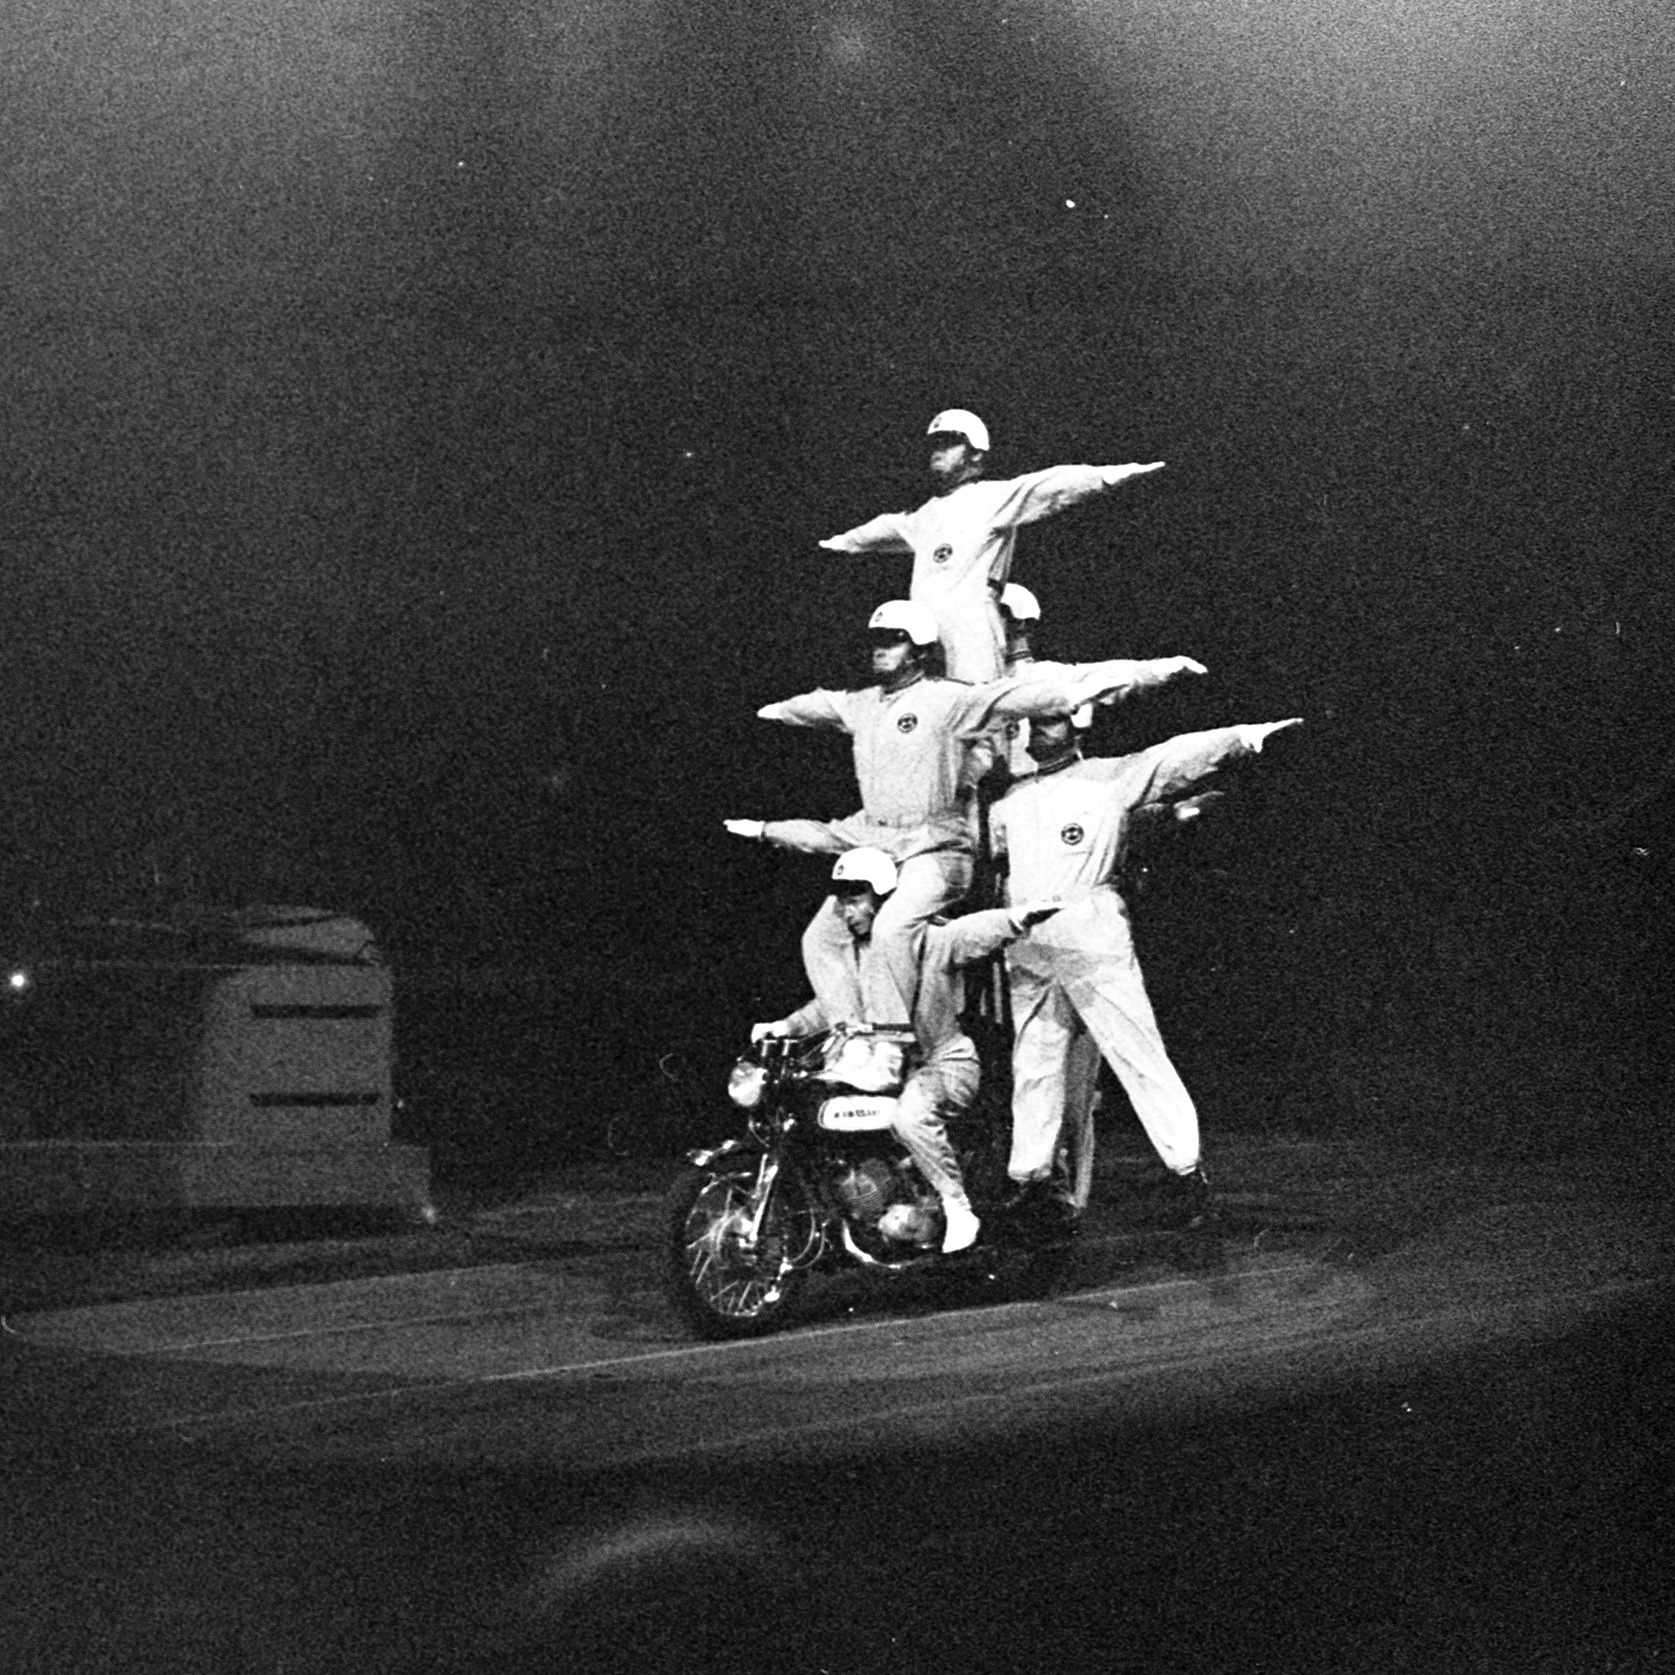 Motorcycle Stuntmen at CNE Grandstand, August 28, 1971, Canadian National Exhibition Archives, MG5-F2942-I10. Courtesy of the CNEA